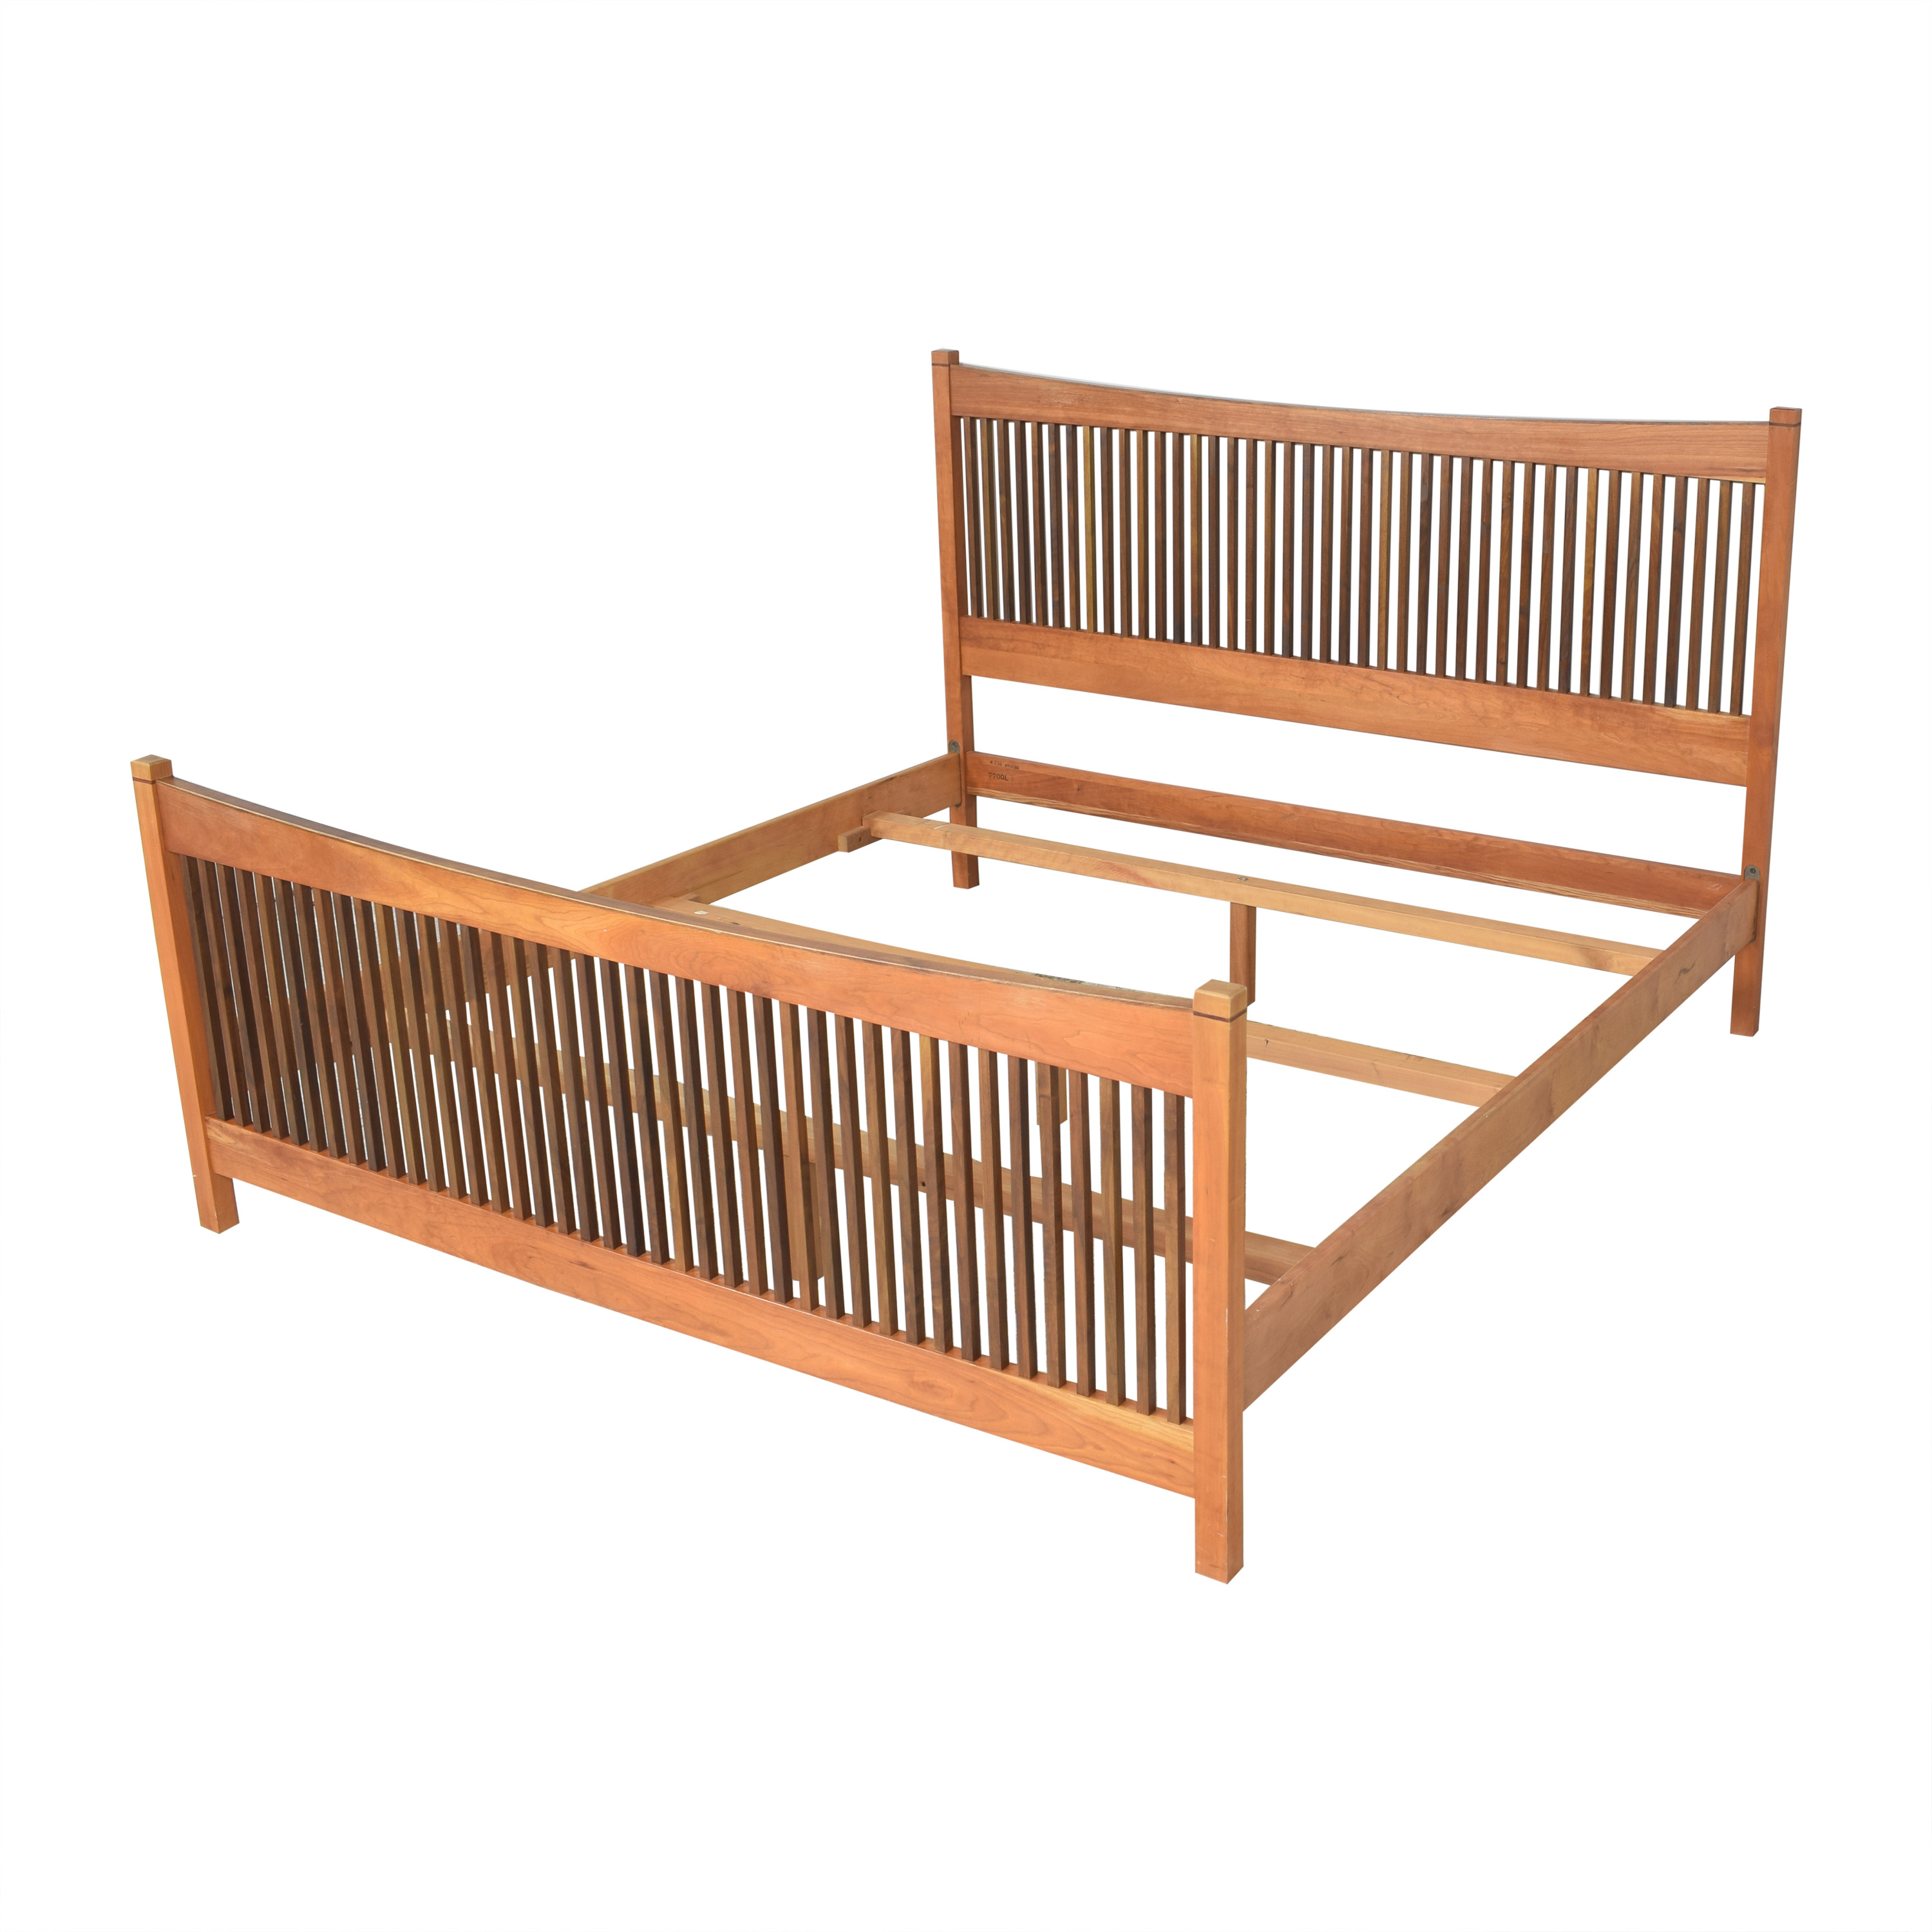 Stickley Furniture Stickley Furniture Metropolitan Spindle King Bed Beds